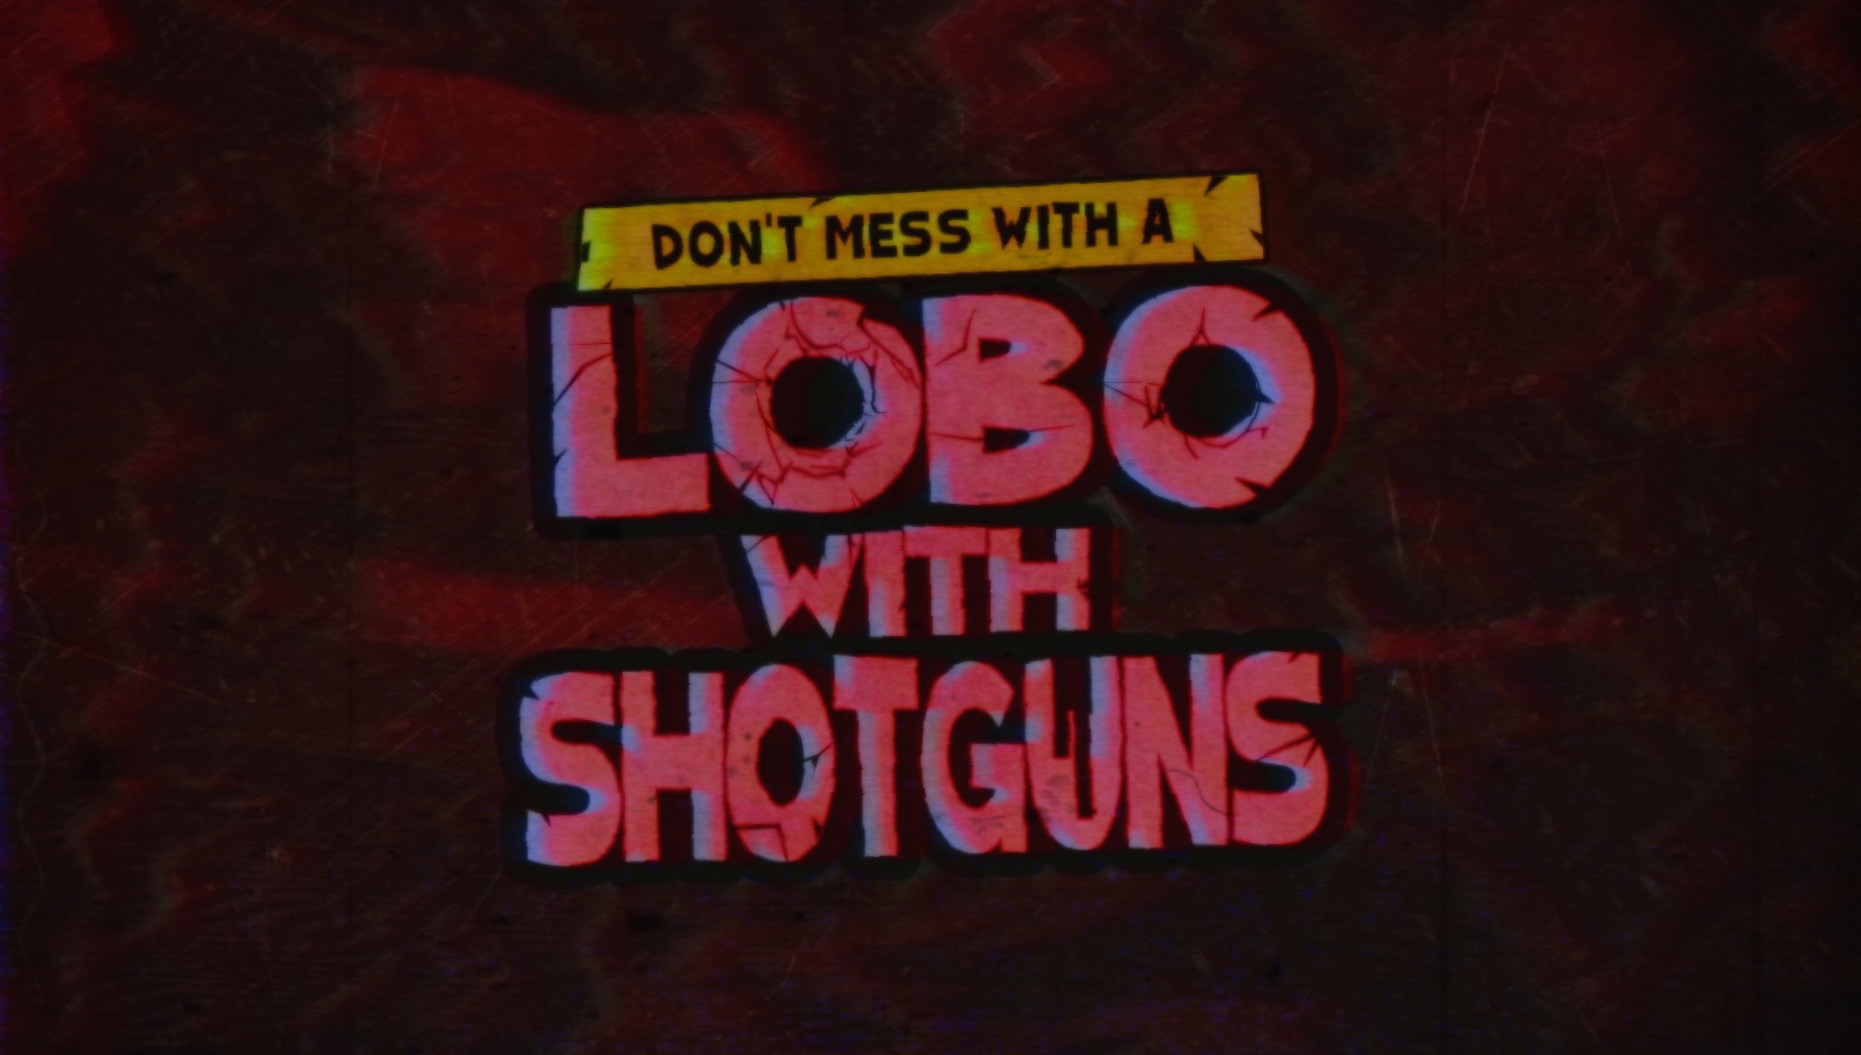 Lobo With Shotguns